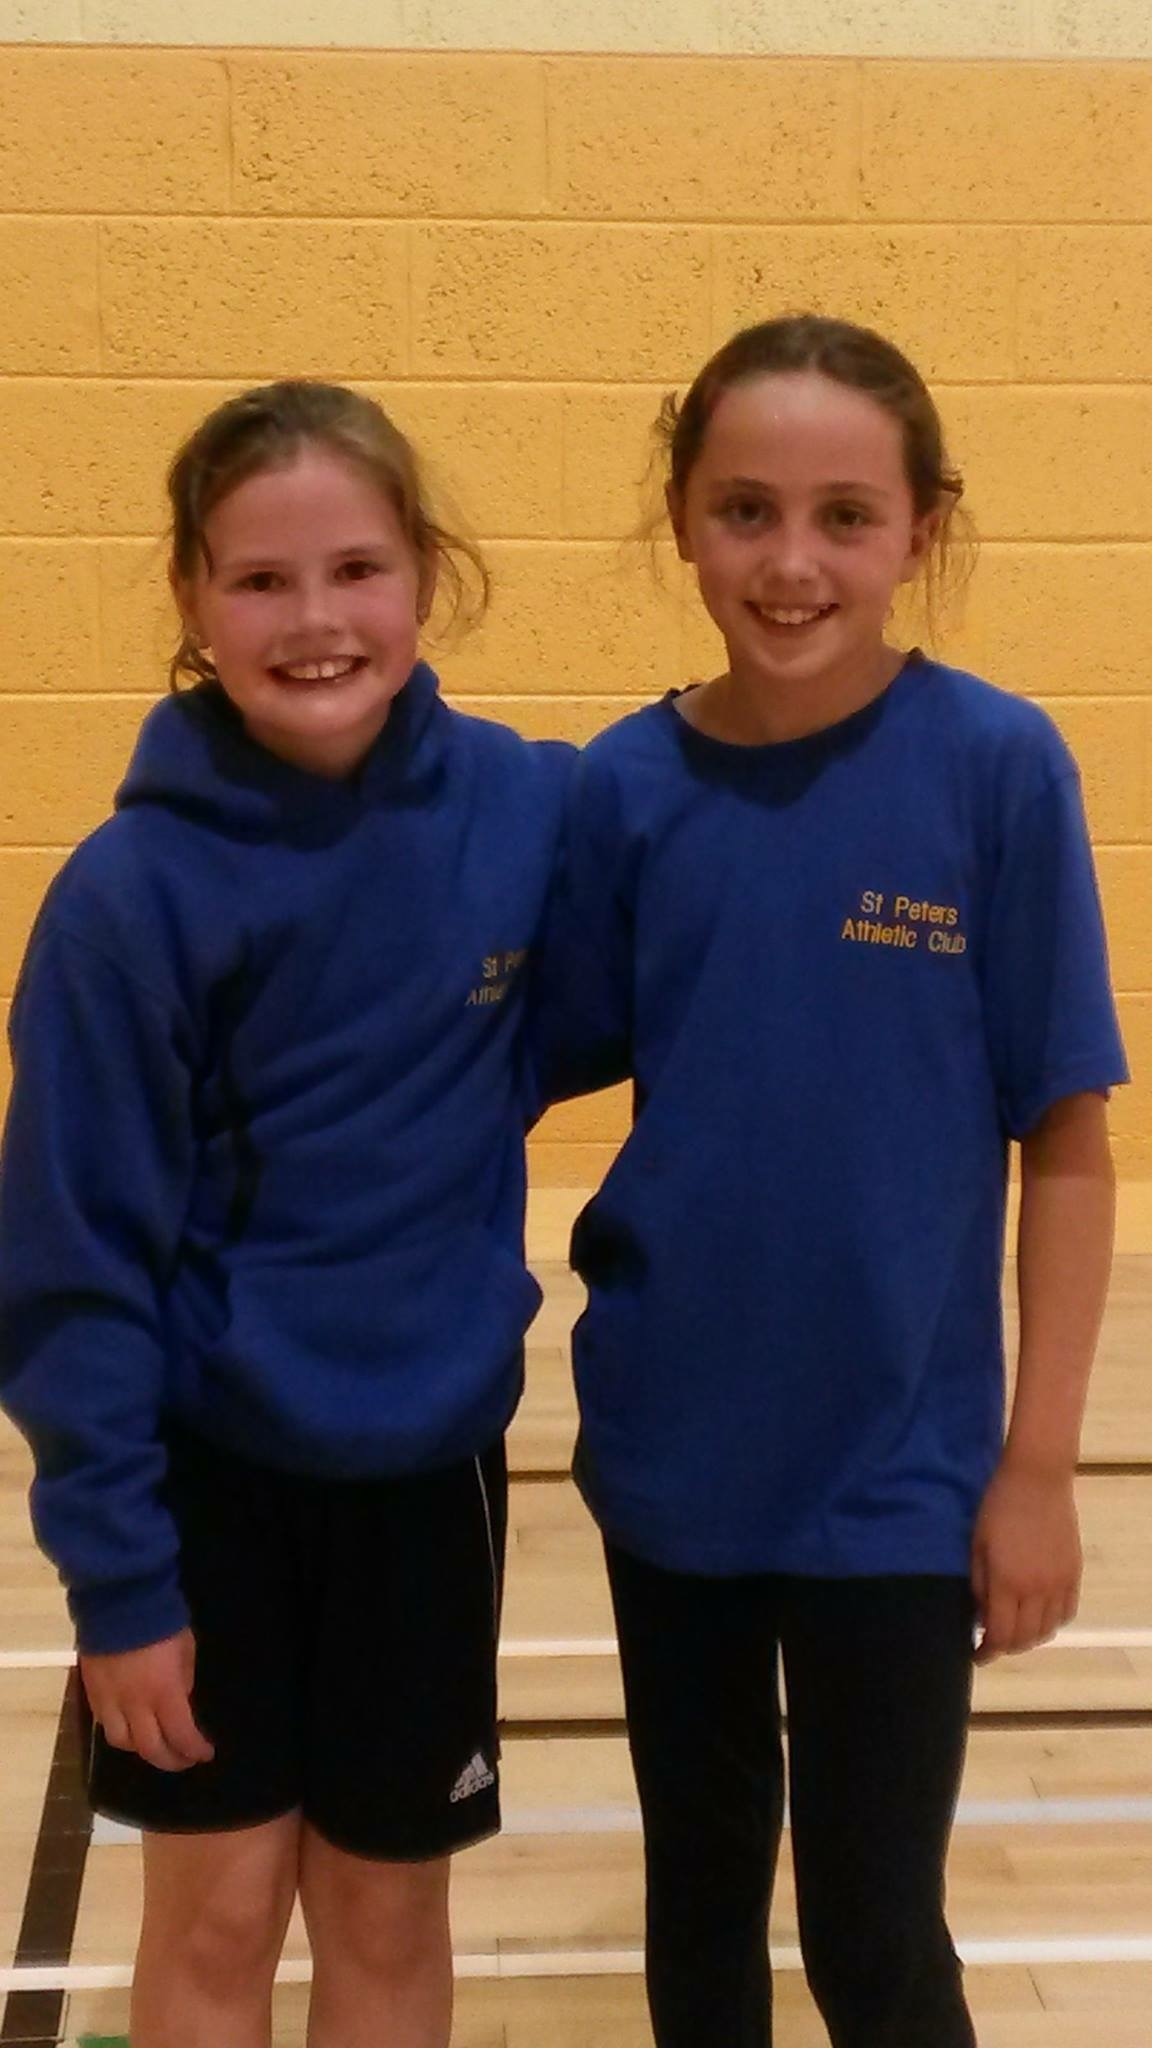 Judith Bell and Niamh Brady at Irish Childrens' Games (Tullamore, June 2015)